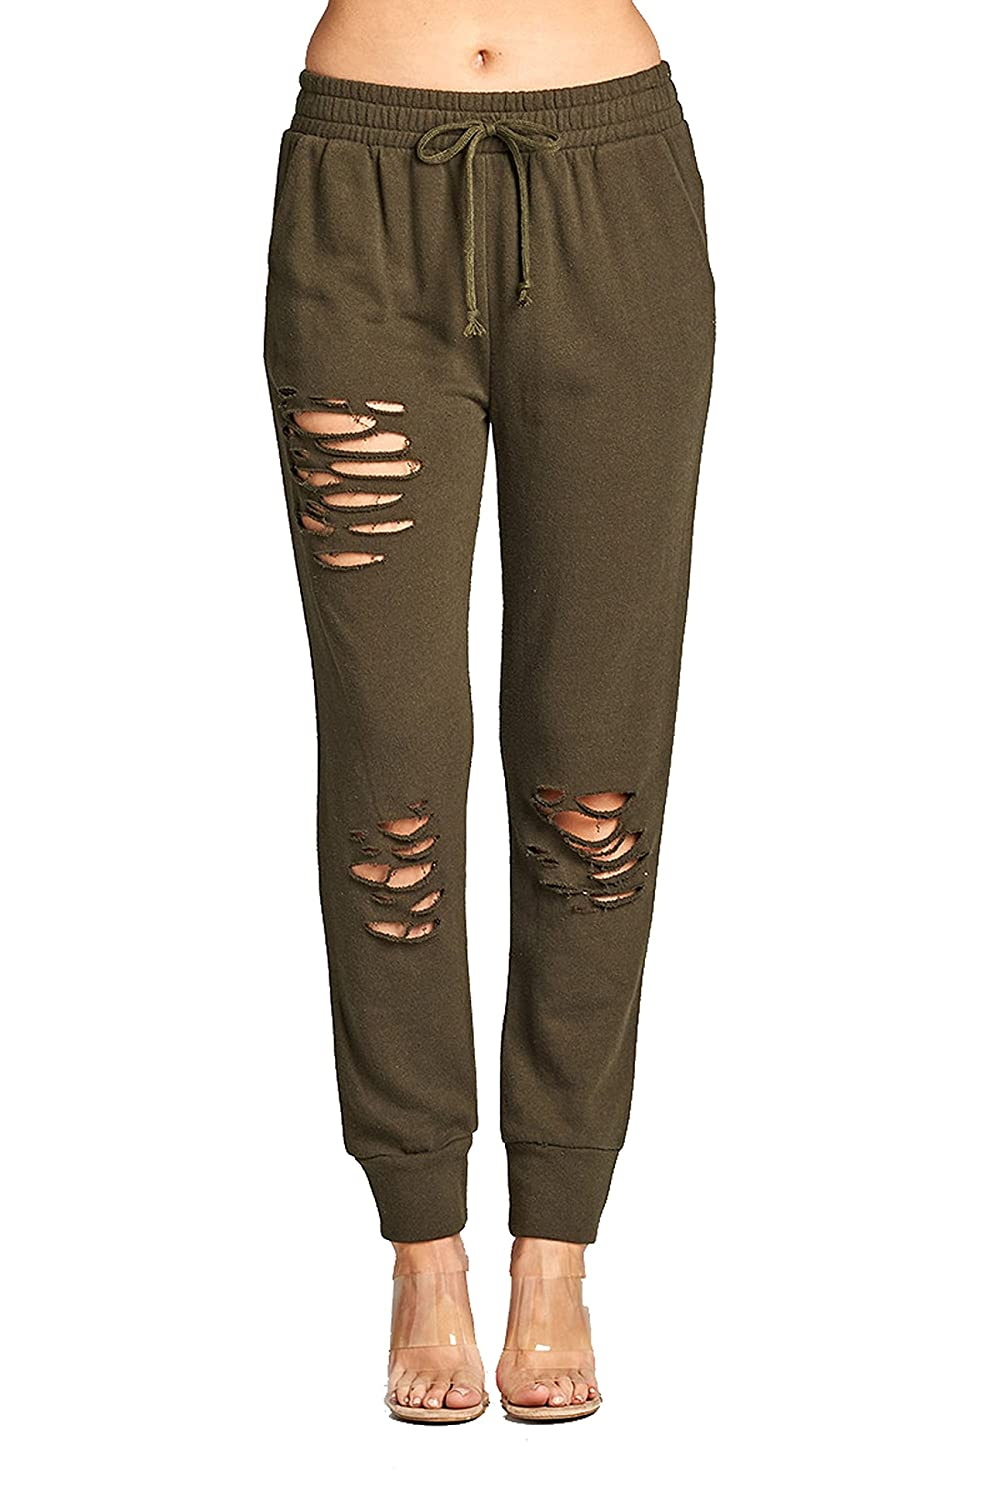 TOP LEGGING TL Women's Ripped Distressed French Terry Casual Jogger Pants Plus Size